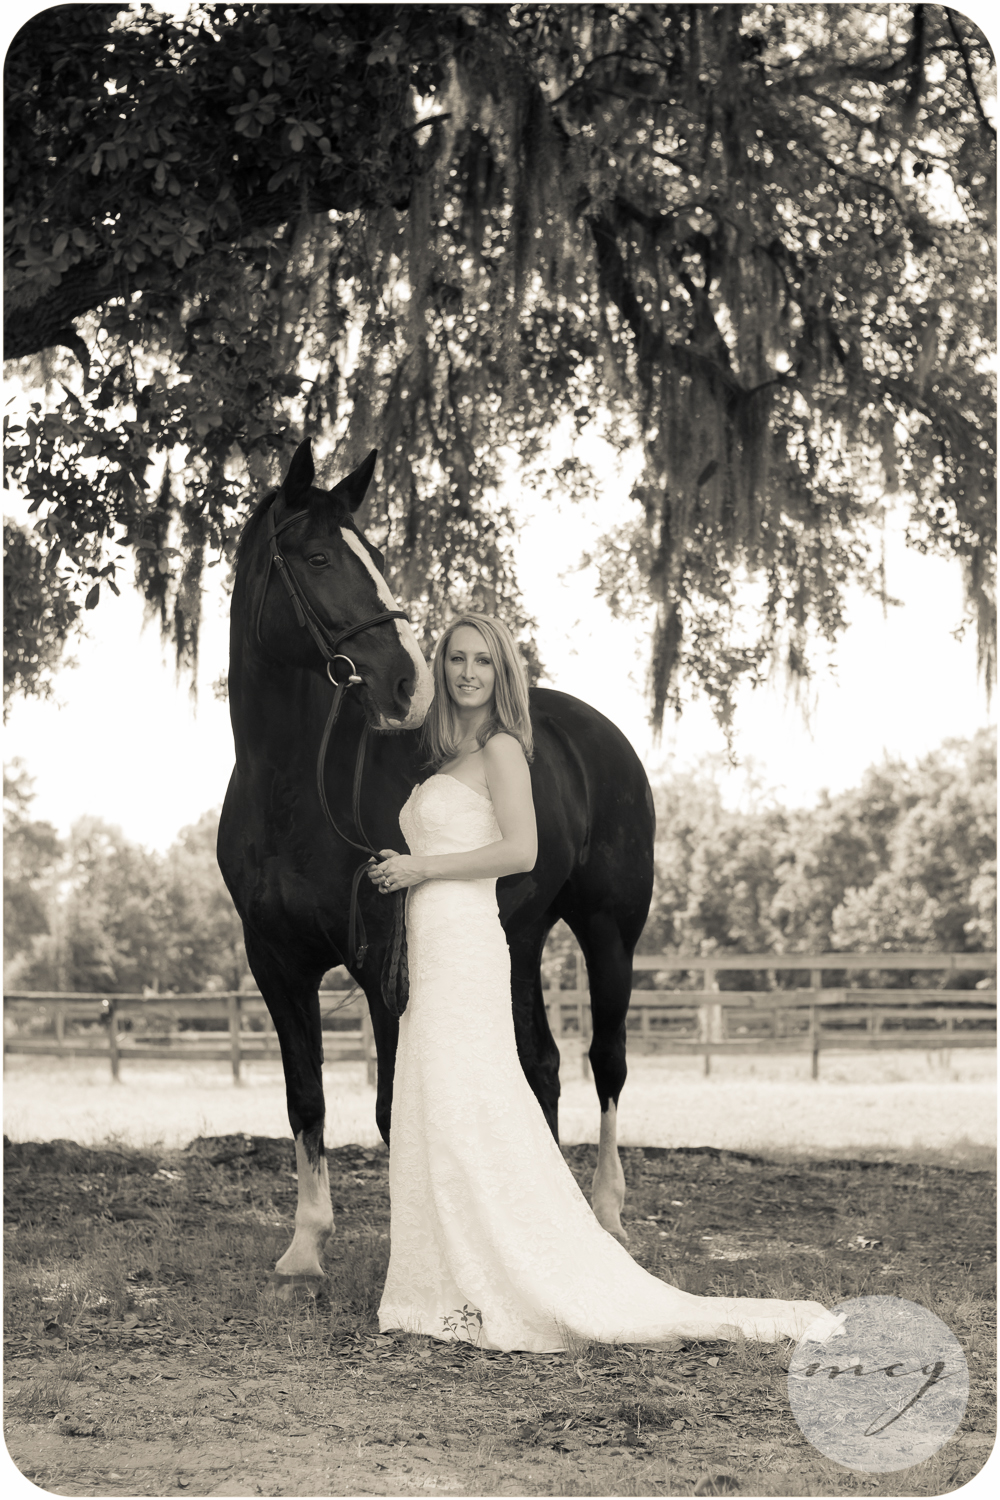 Johns Island South Carolina equine photographer